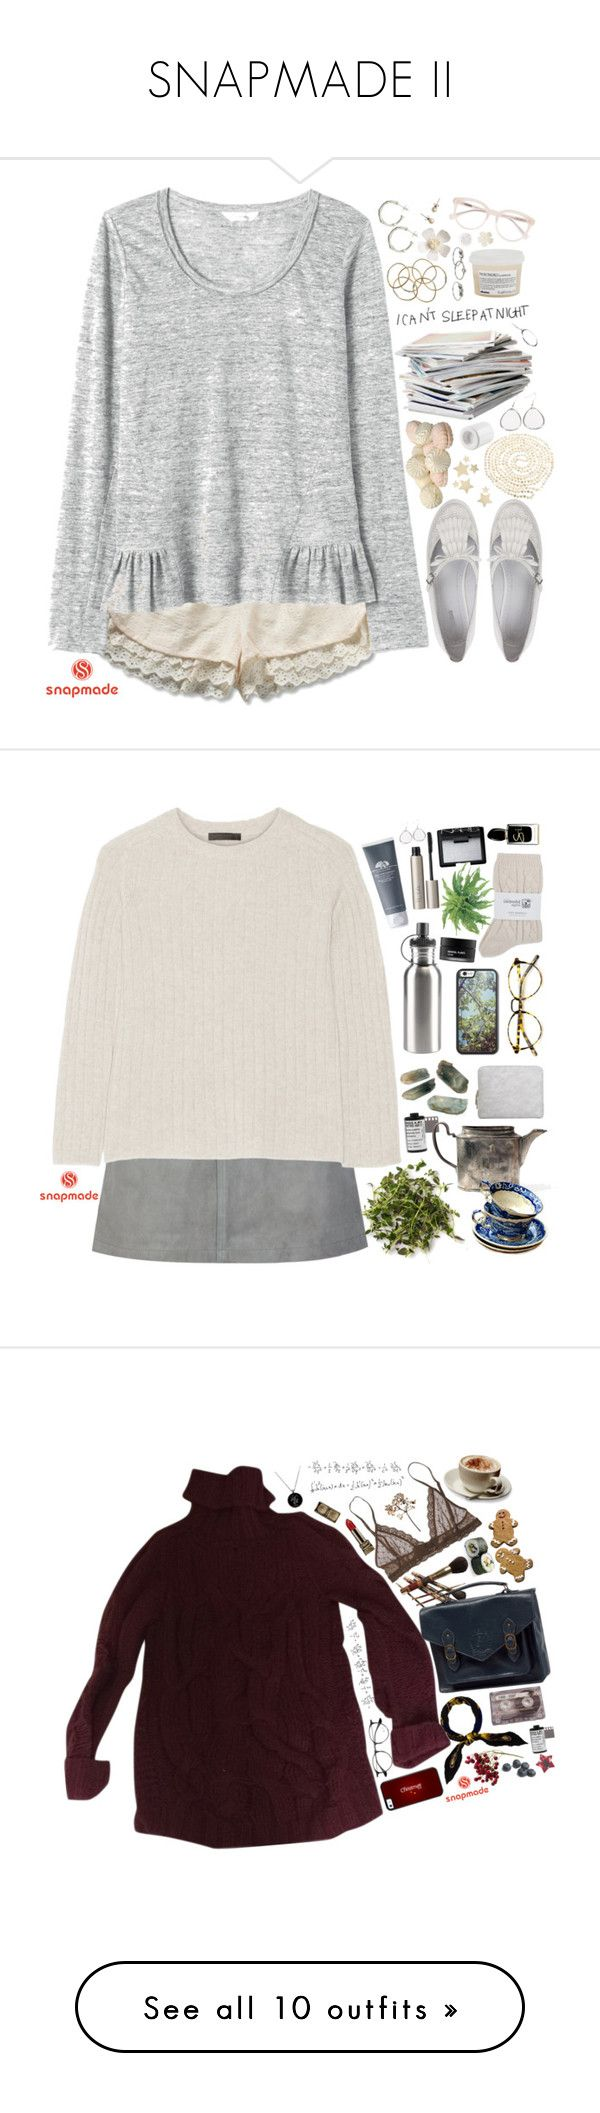 """""""SNAPMADE II"""" by ritaflagy ❤ liked on Polyvore featuring Rebecca Taylor, Diesel, Public Library, H&M, Dinny Hall, J.Crew, MANGO, Davines, Derek Lam and Bethany Lowe"""